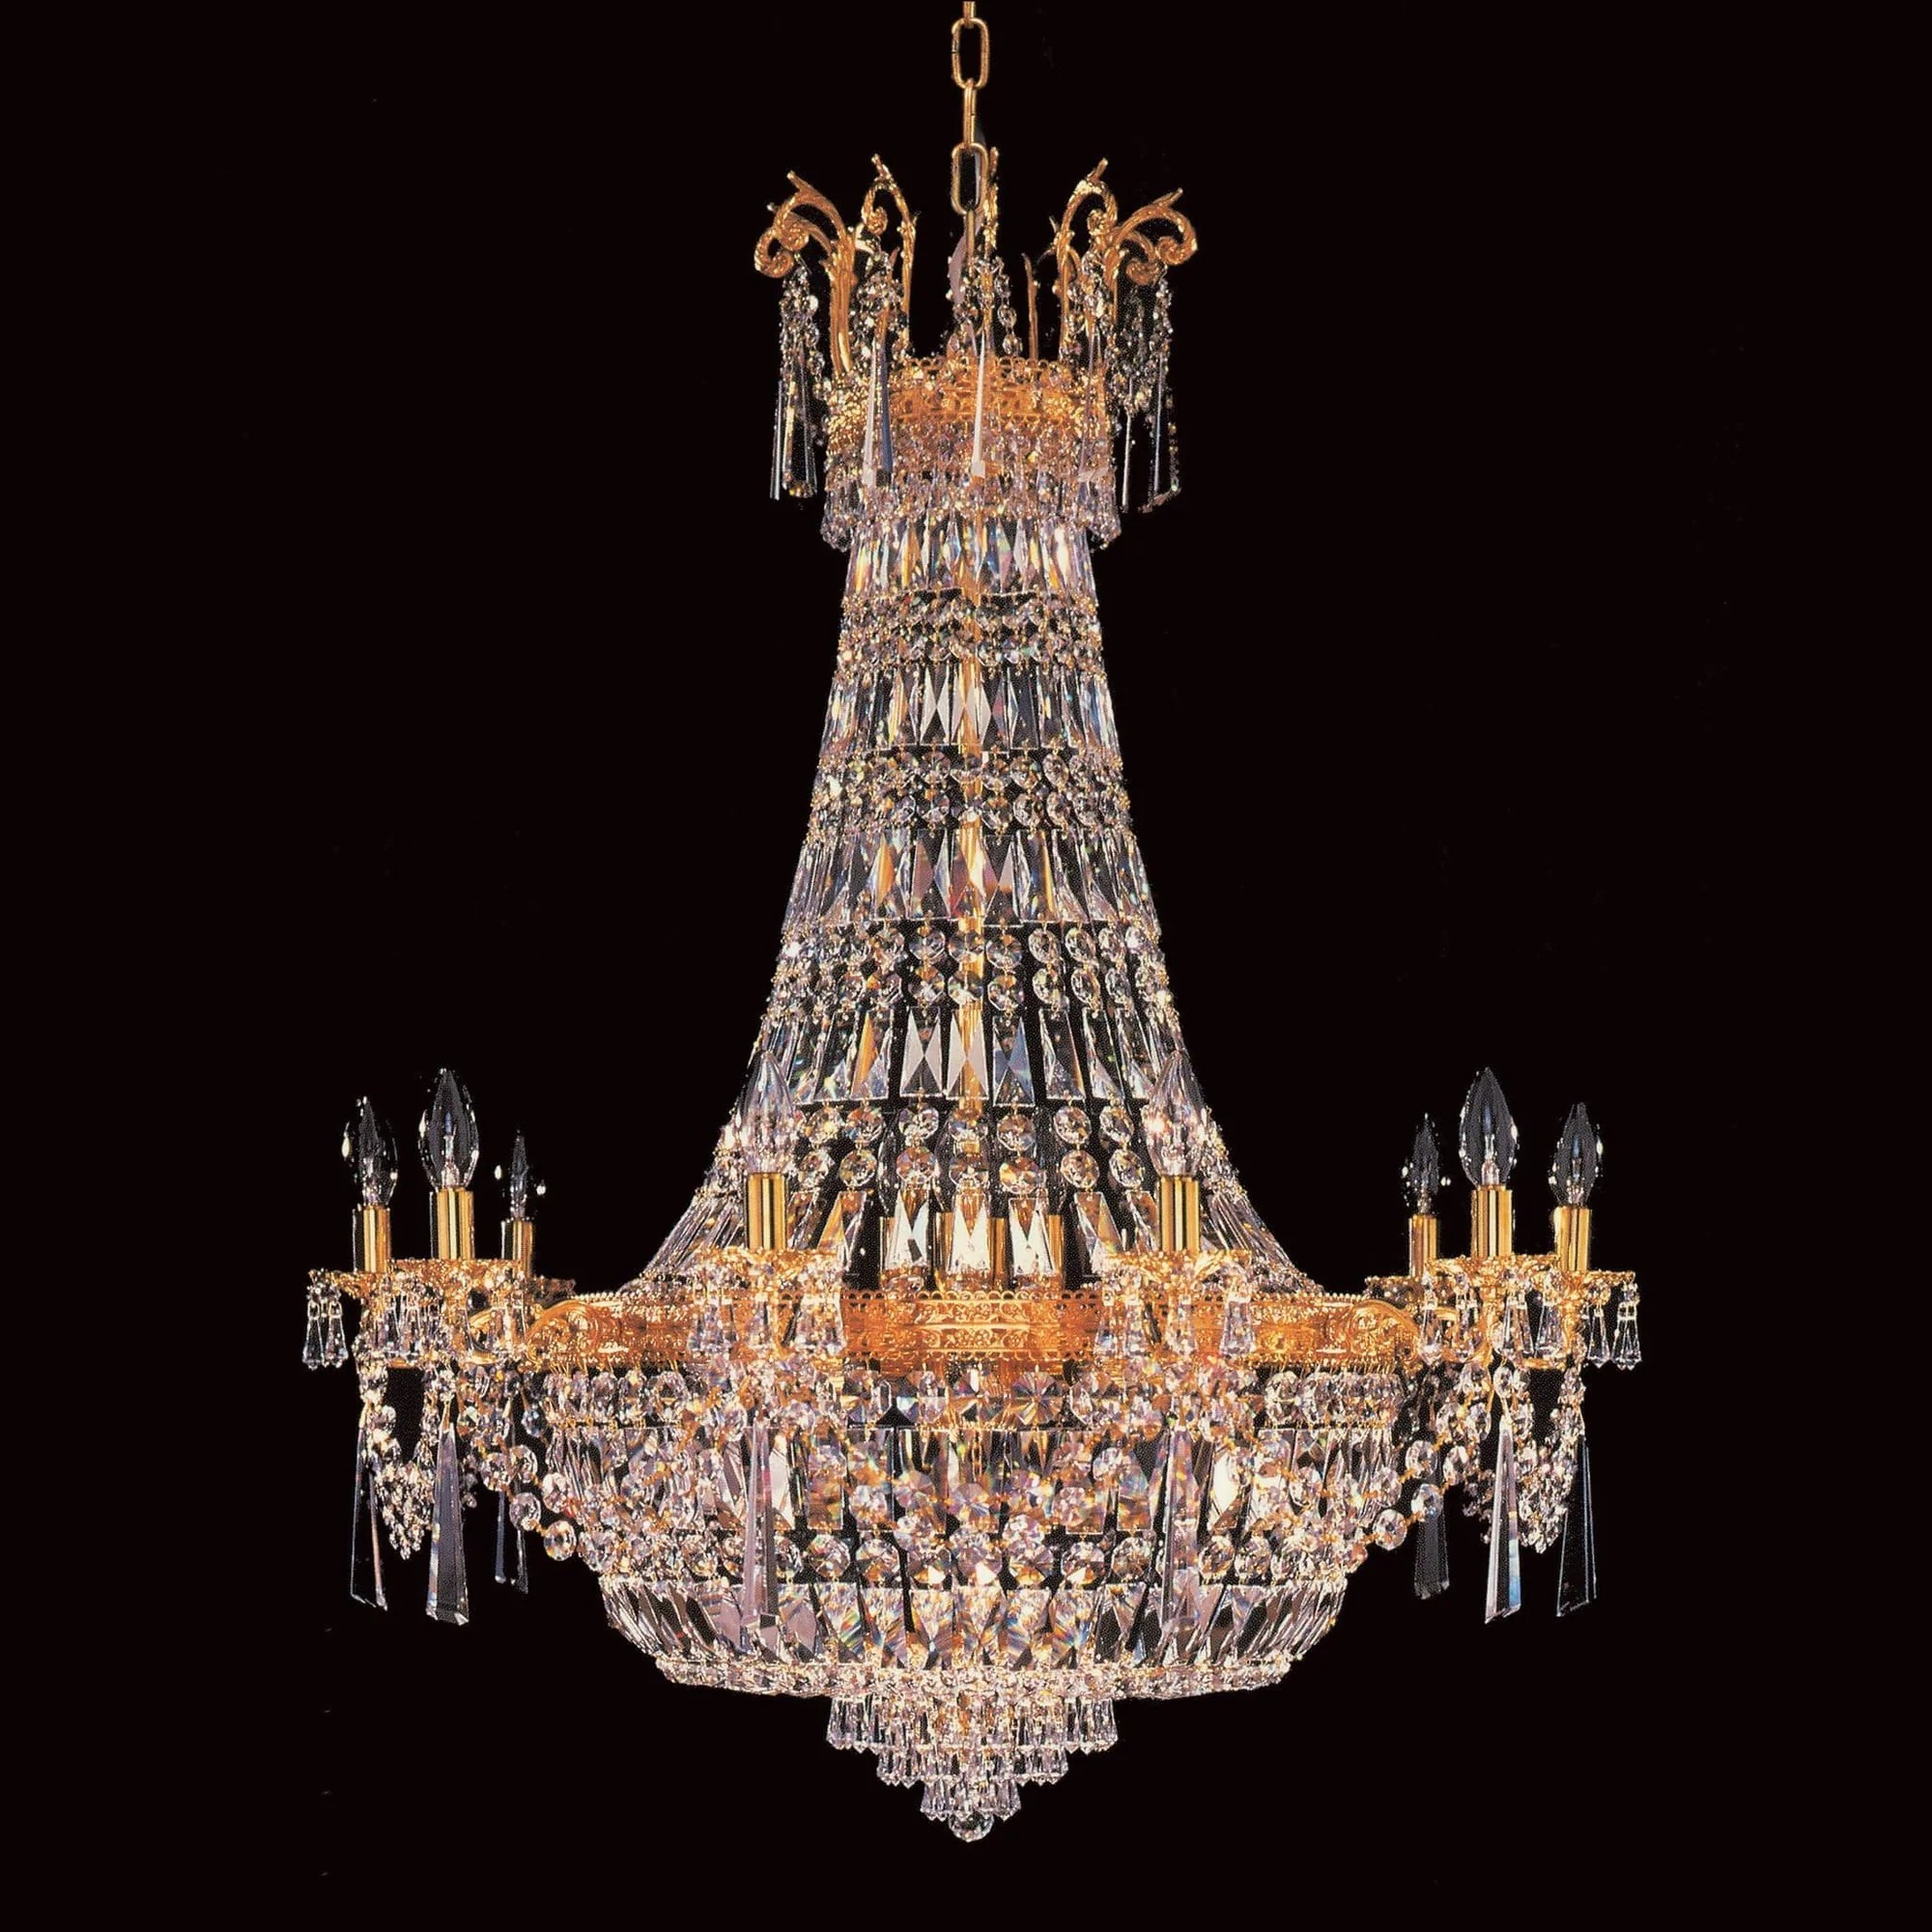 Berlin 24.de Impex Berlin 24 Light Starlite Gold Crystal Chandelier